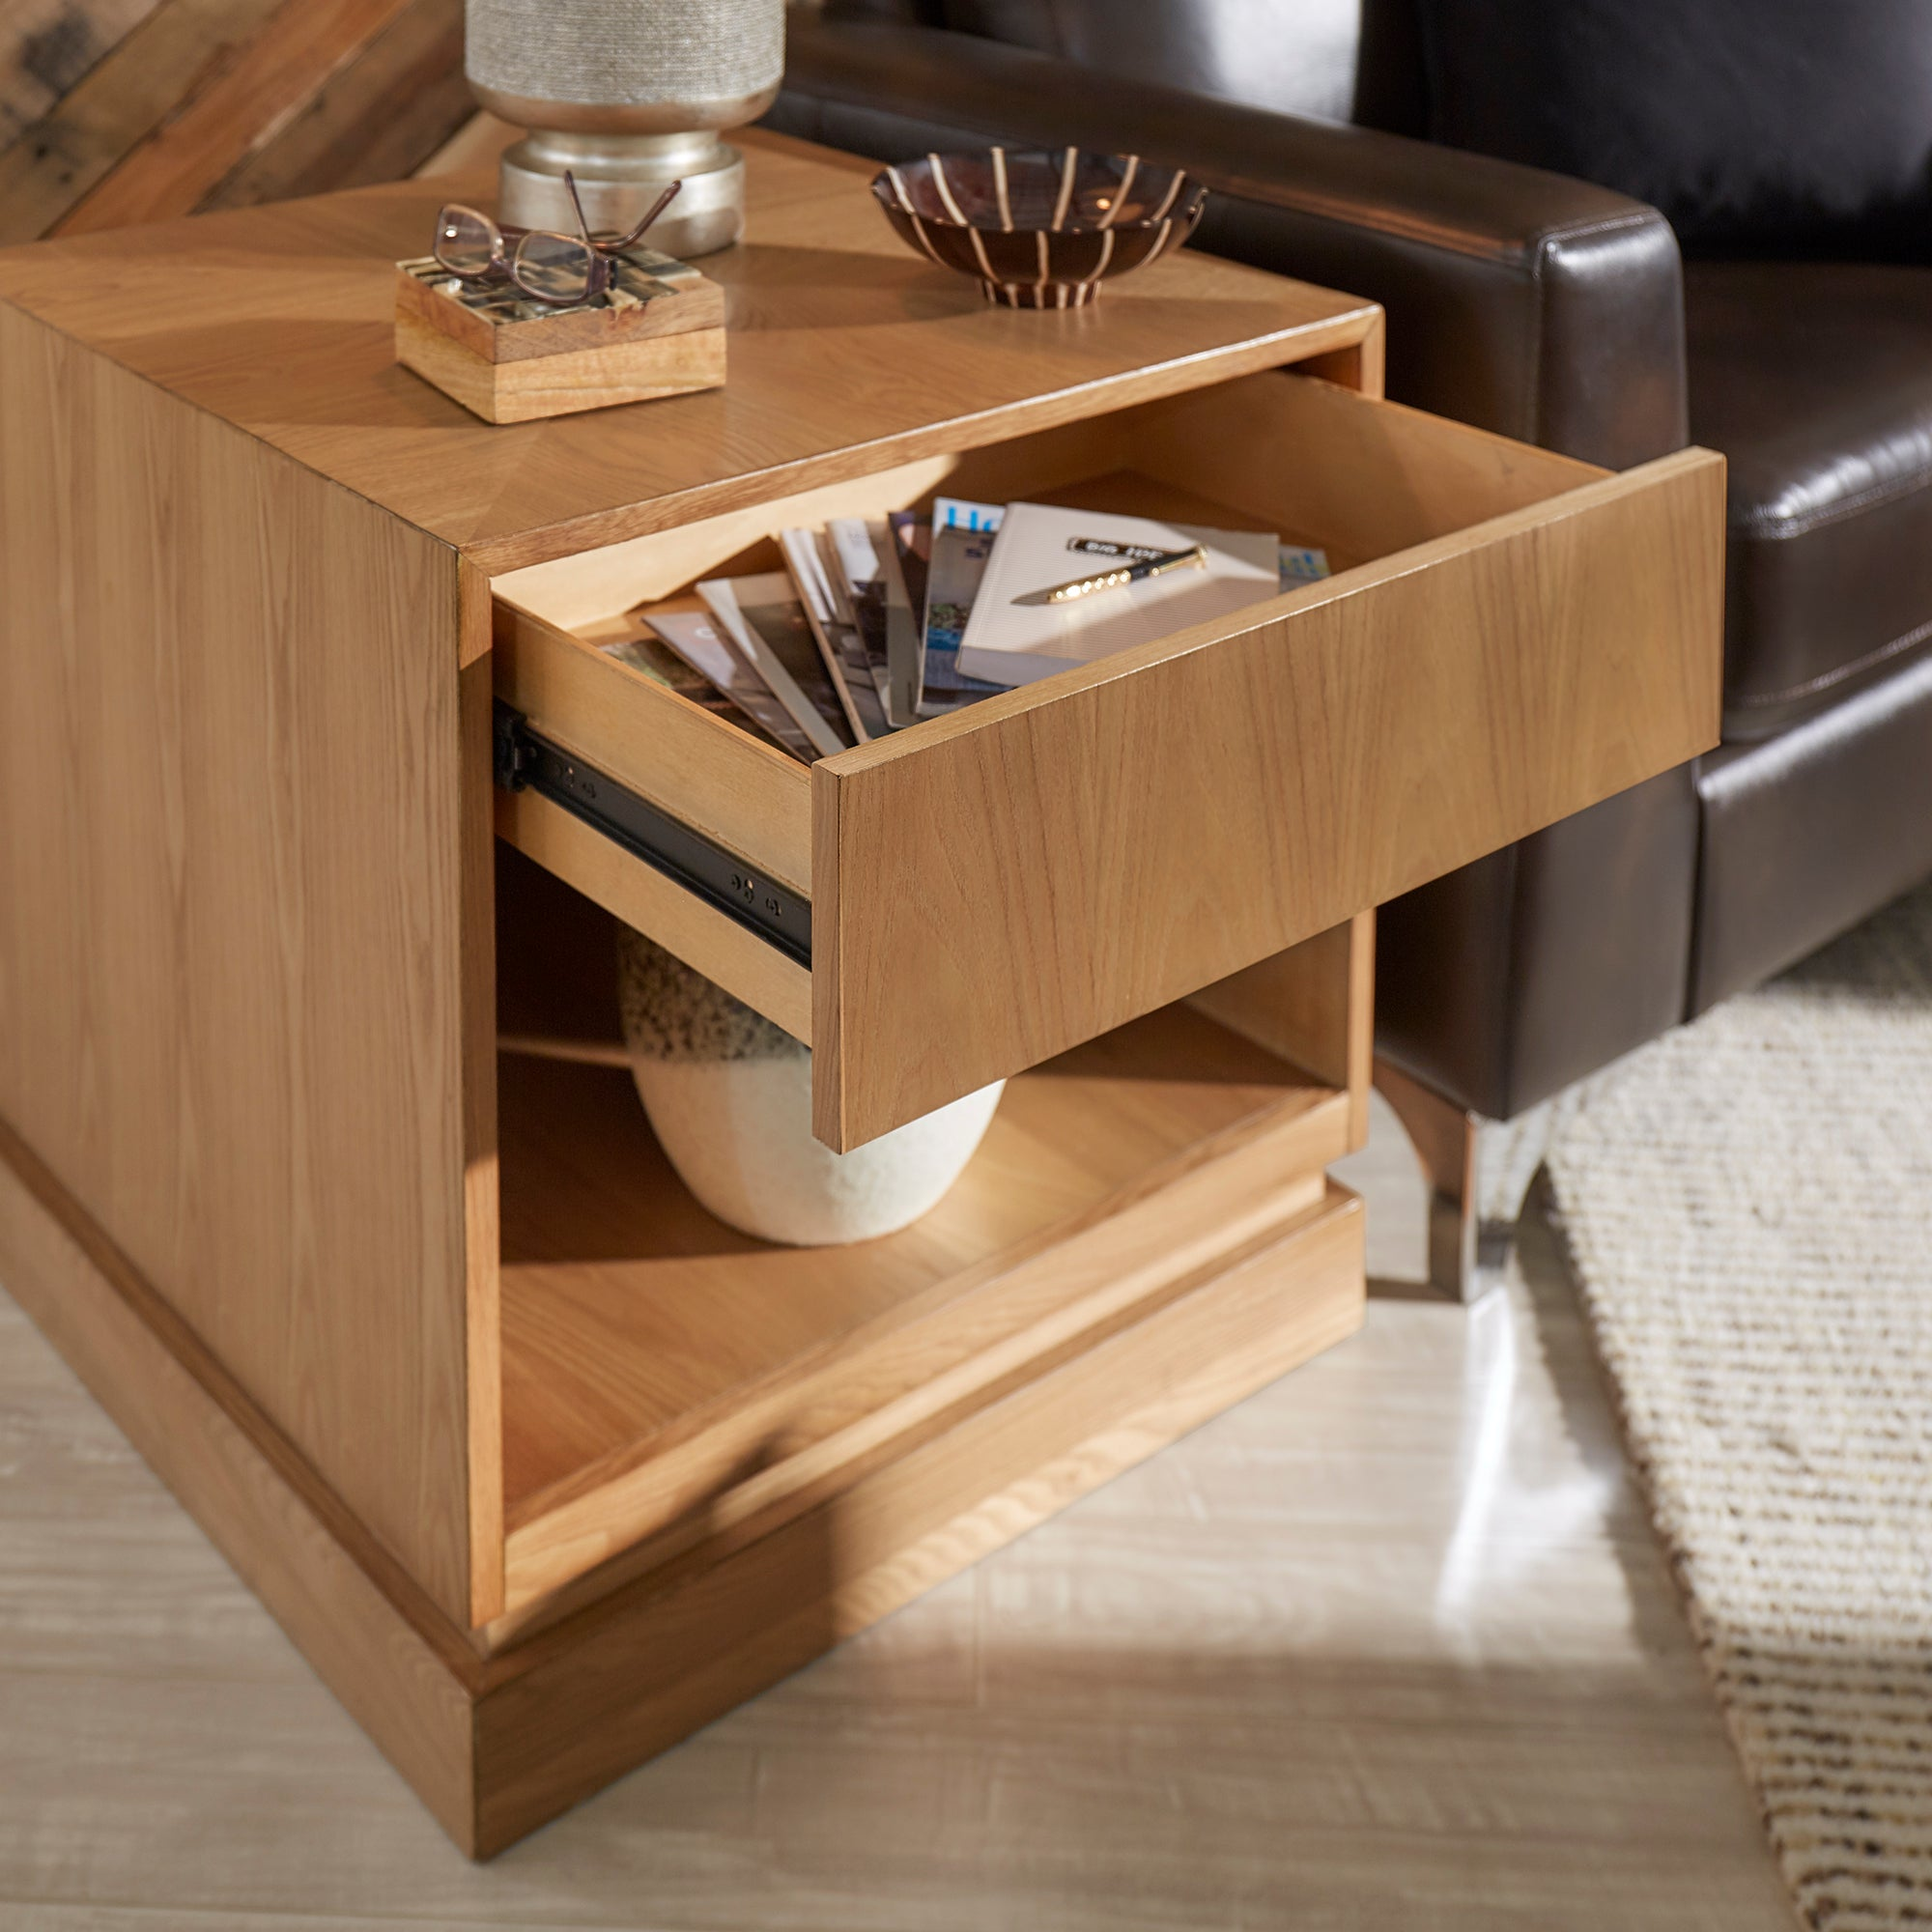 1-Drawer Wood End Table - Natural Finish